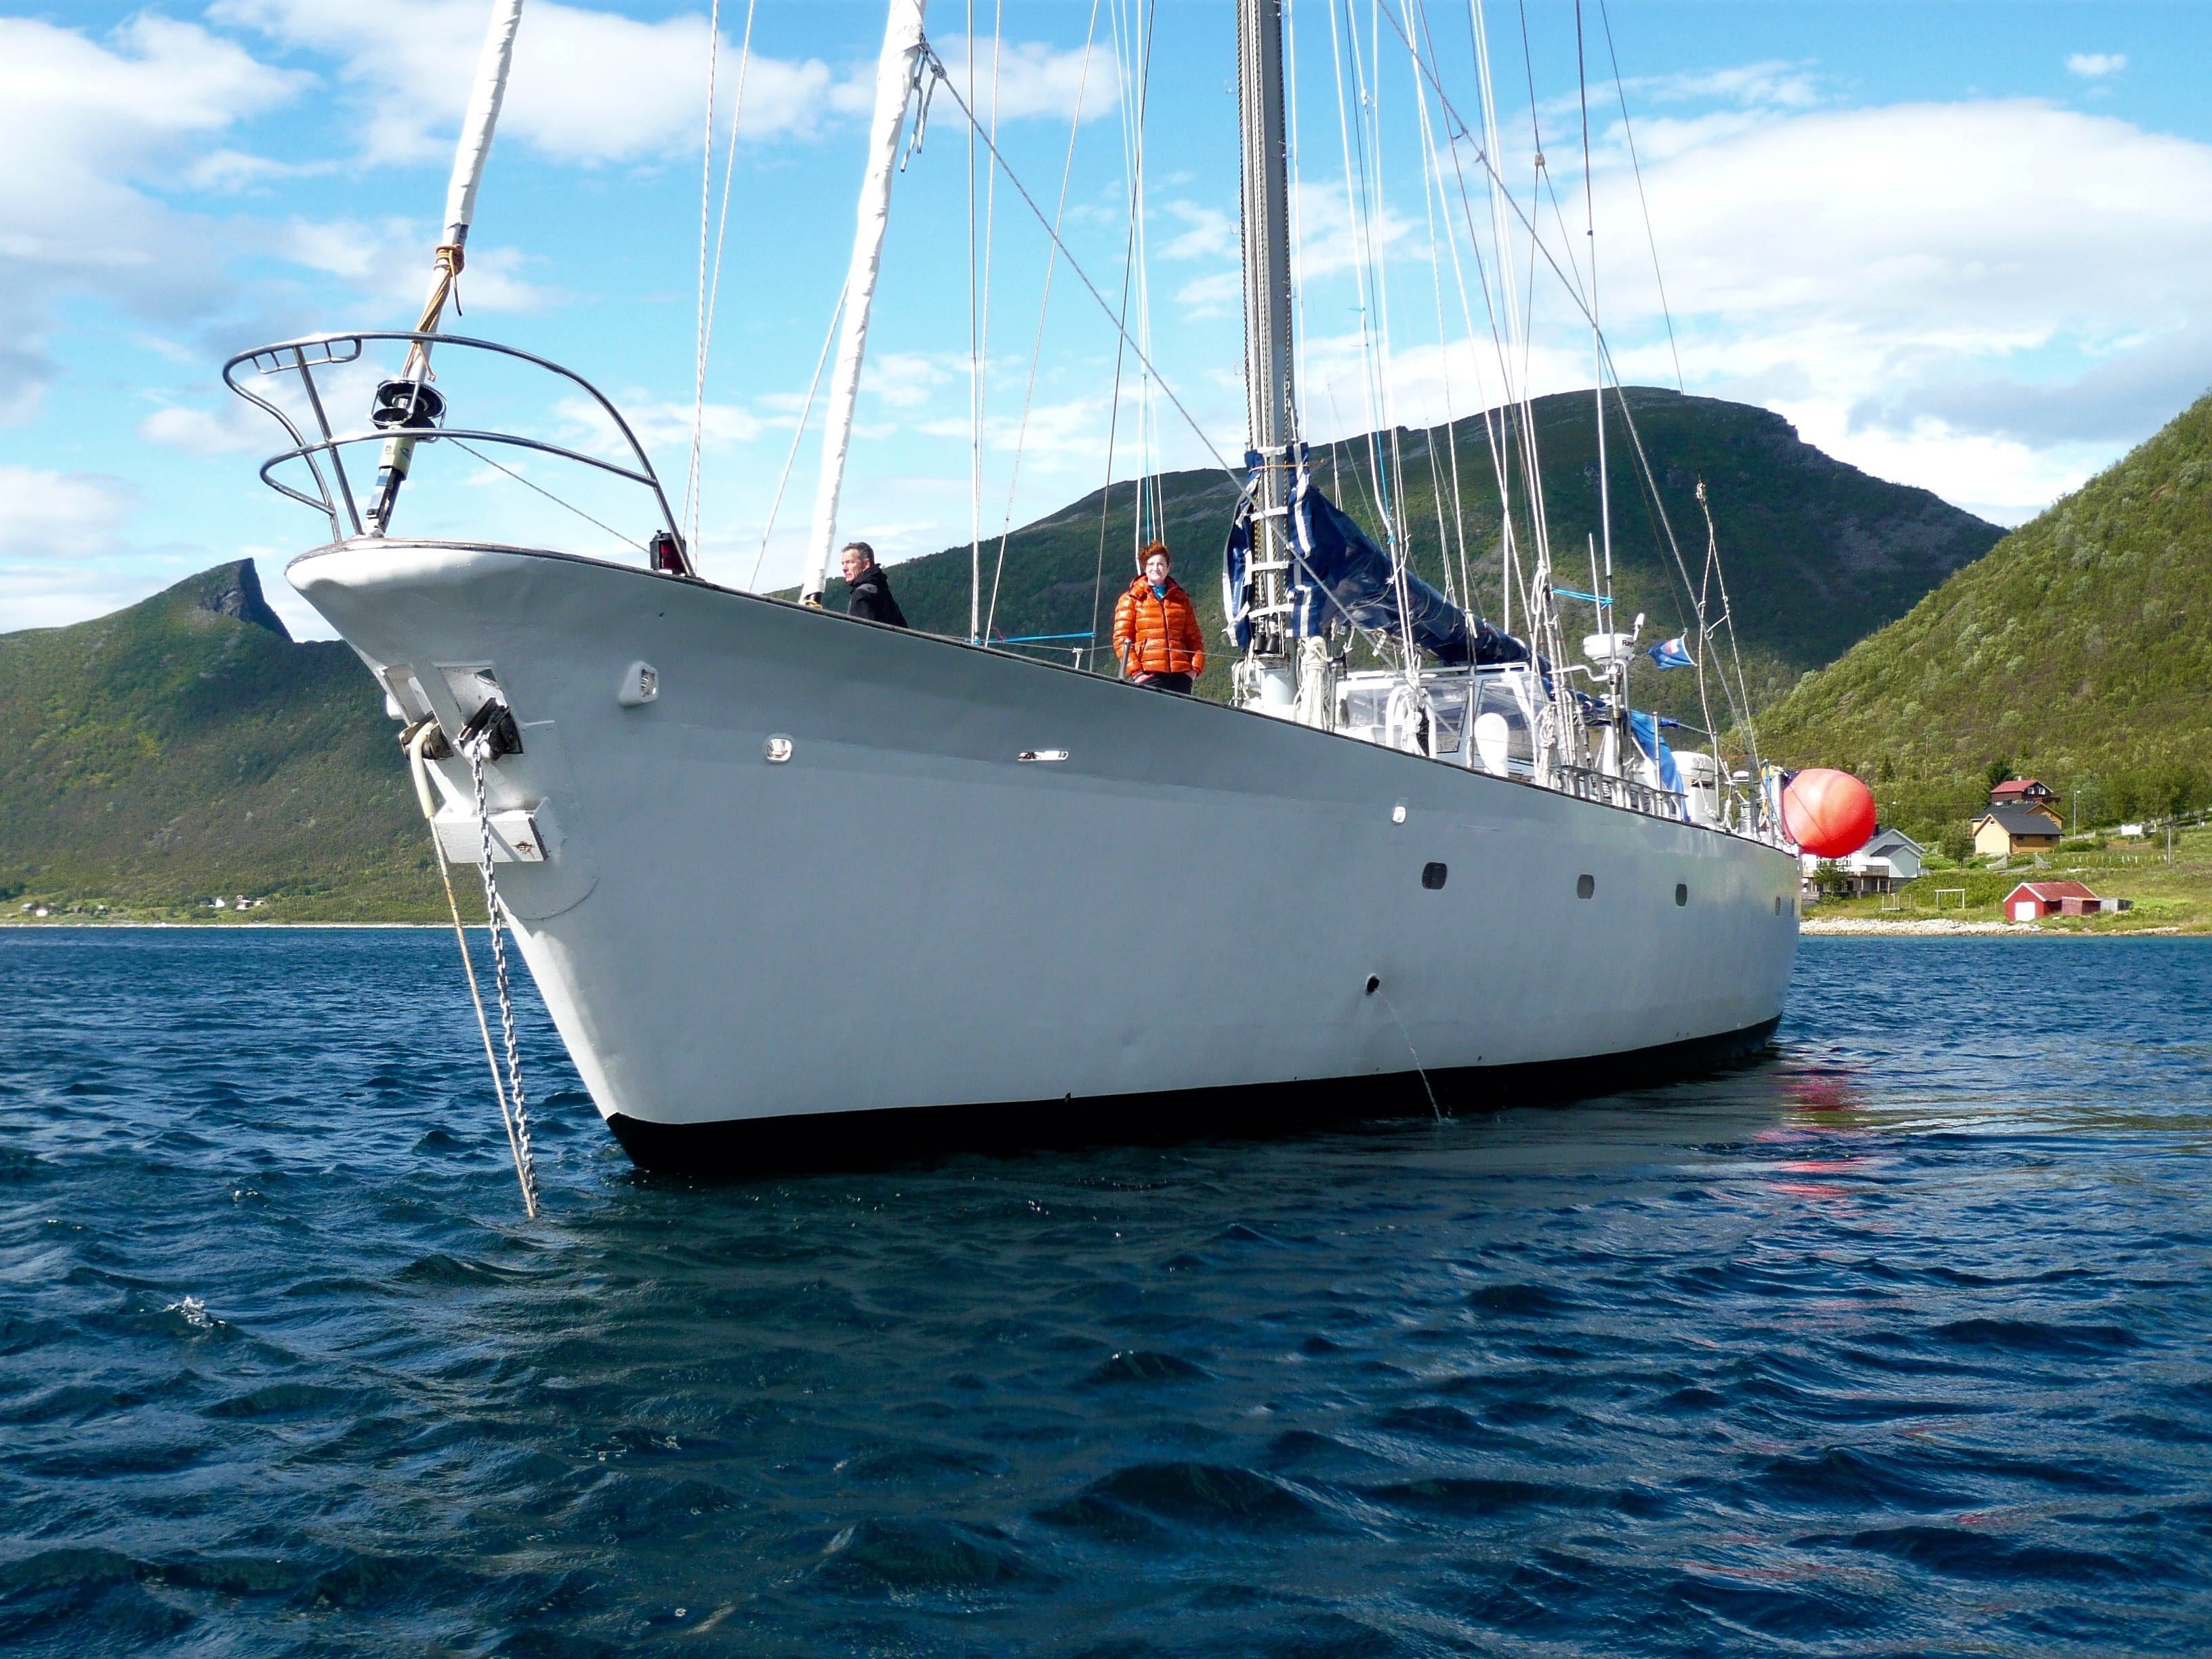 Hiking and Sailing trip off the beaten path - 6 days – 69 Nord Sommarøy Outdoor Center